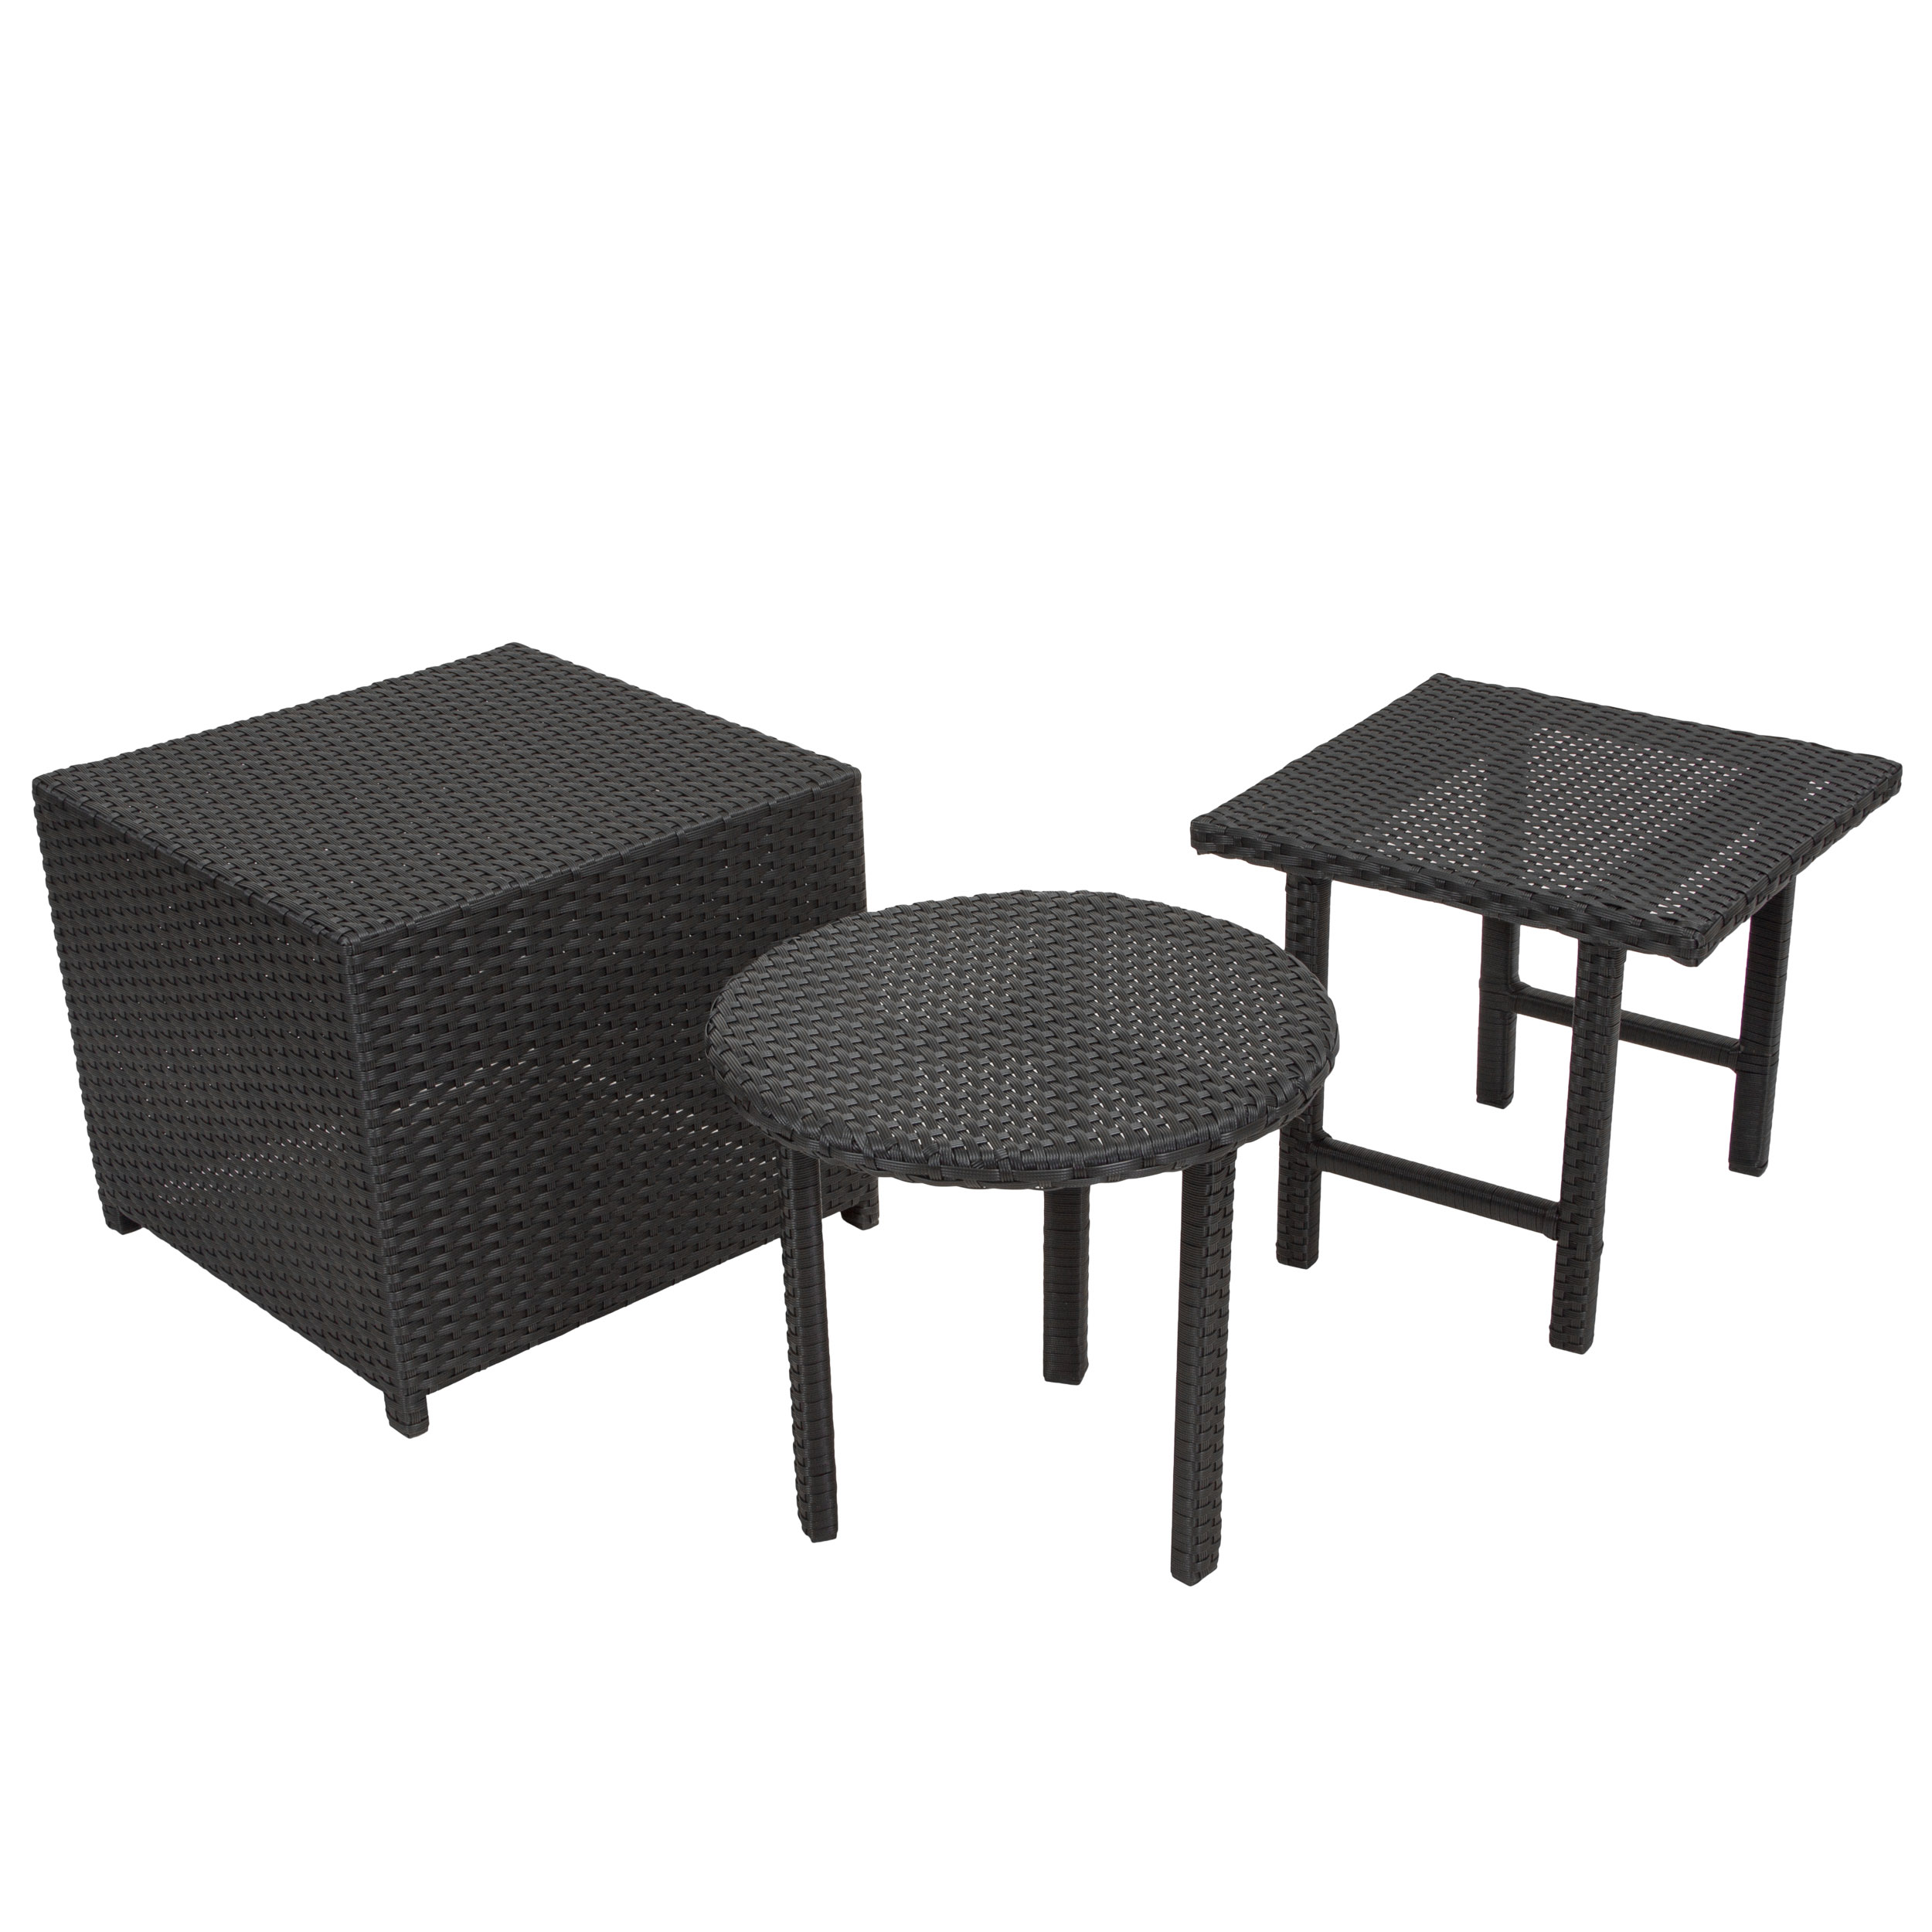 Raleigh Outdoor Wicker Accent Tables, Set Of 3, Multiple Colors